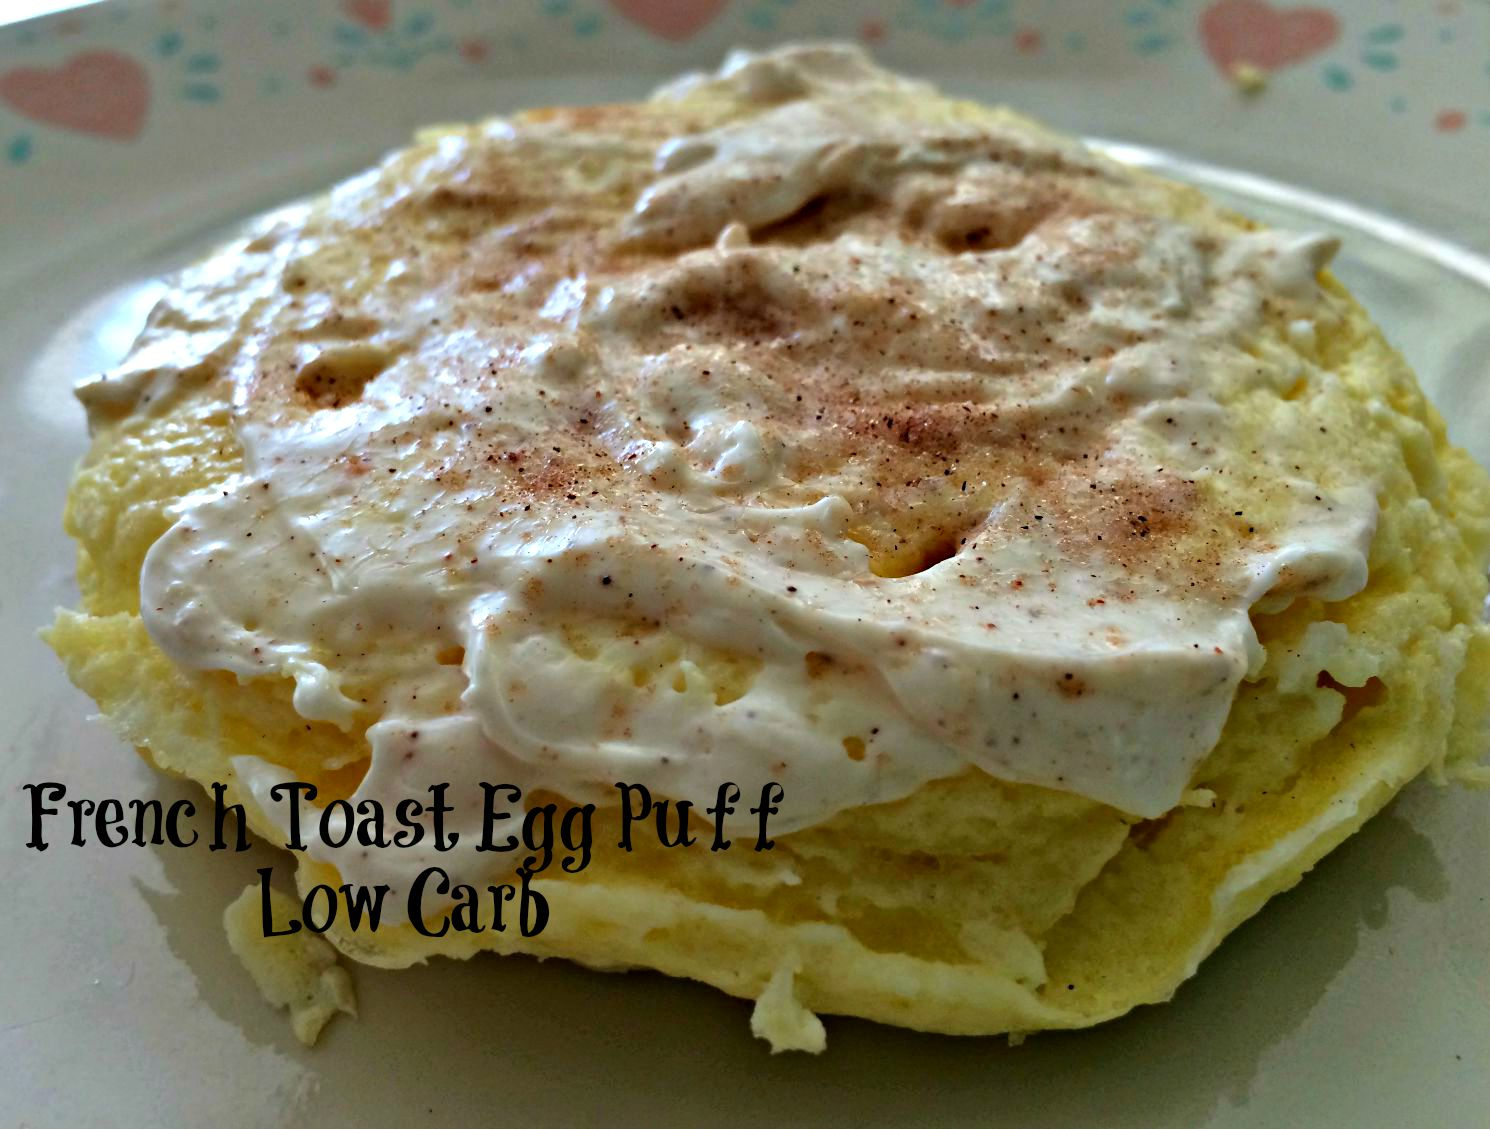 Titere Con Bonete Low Carb French Toast Egg Puff From